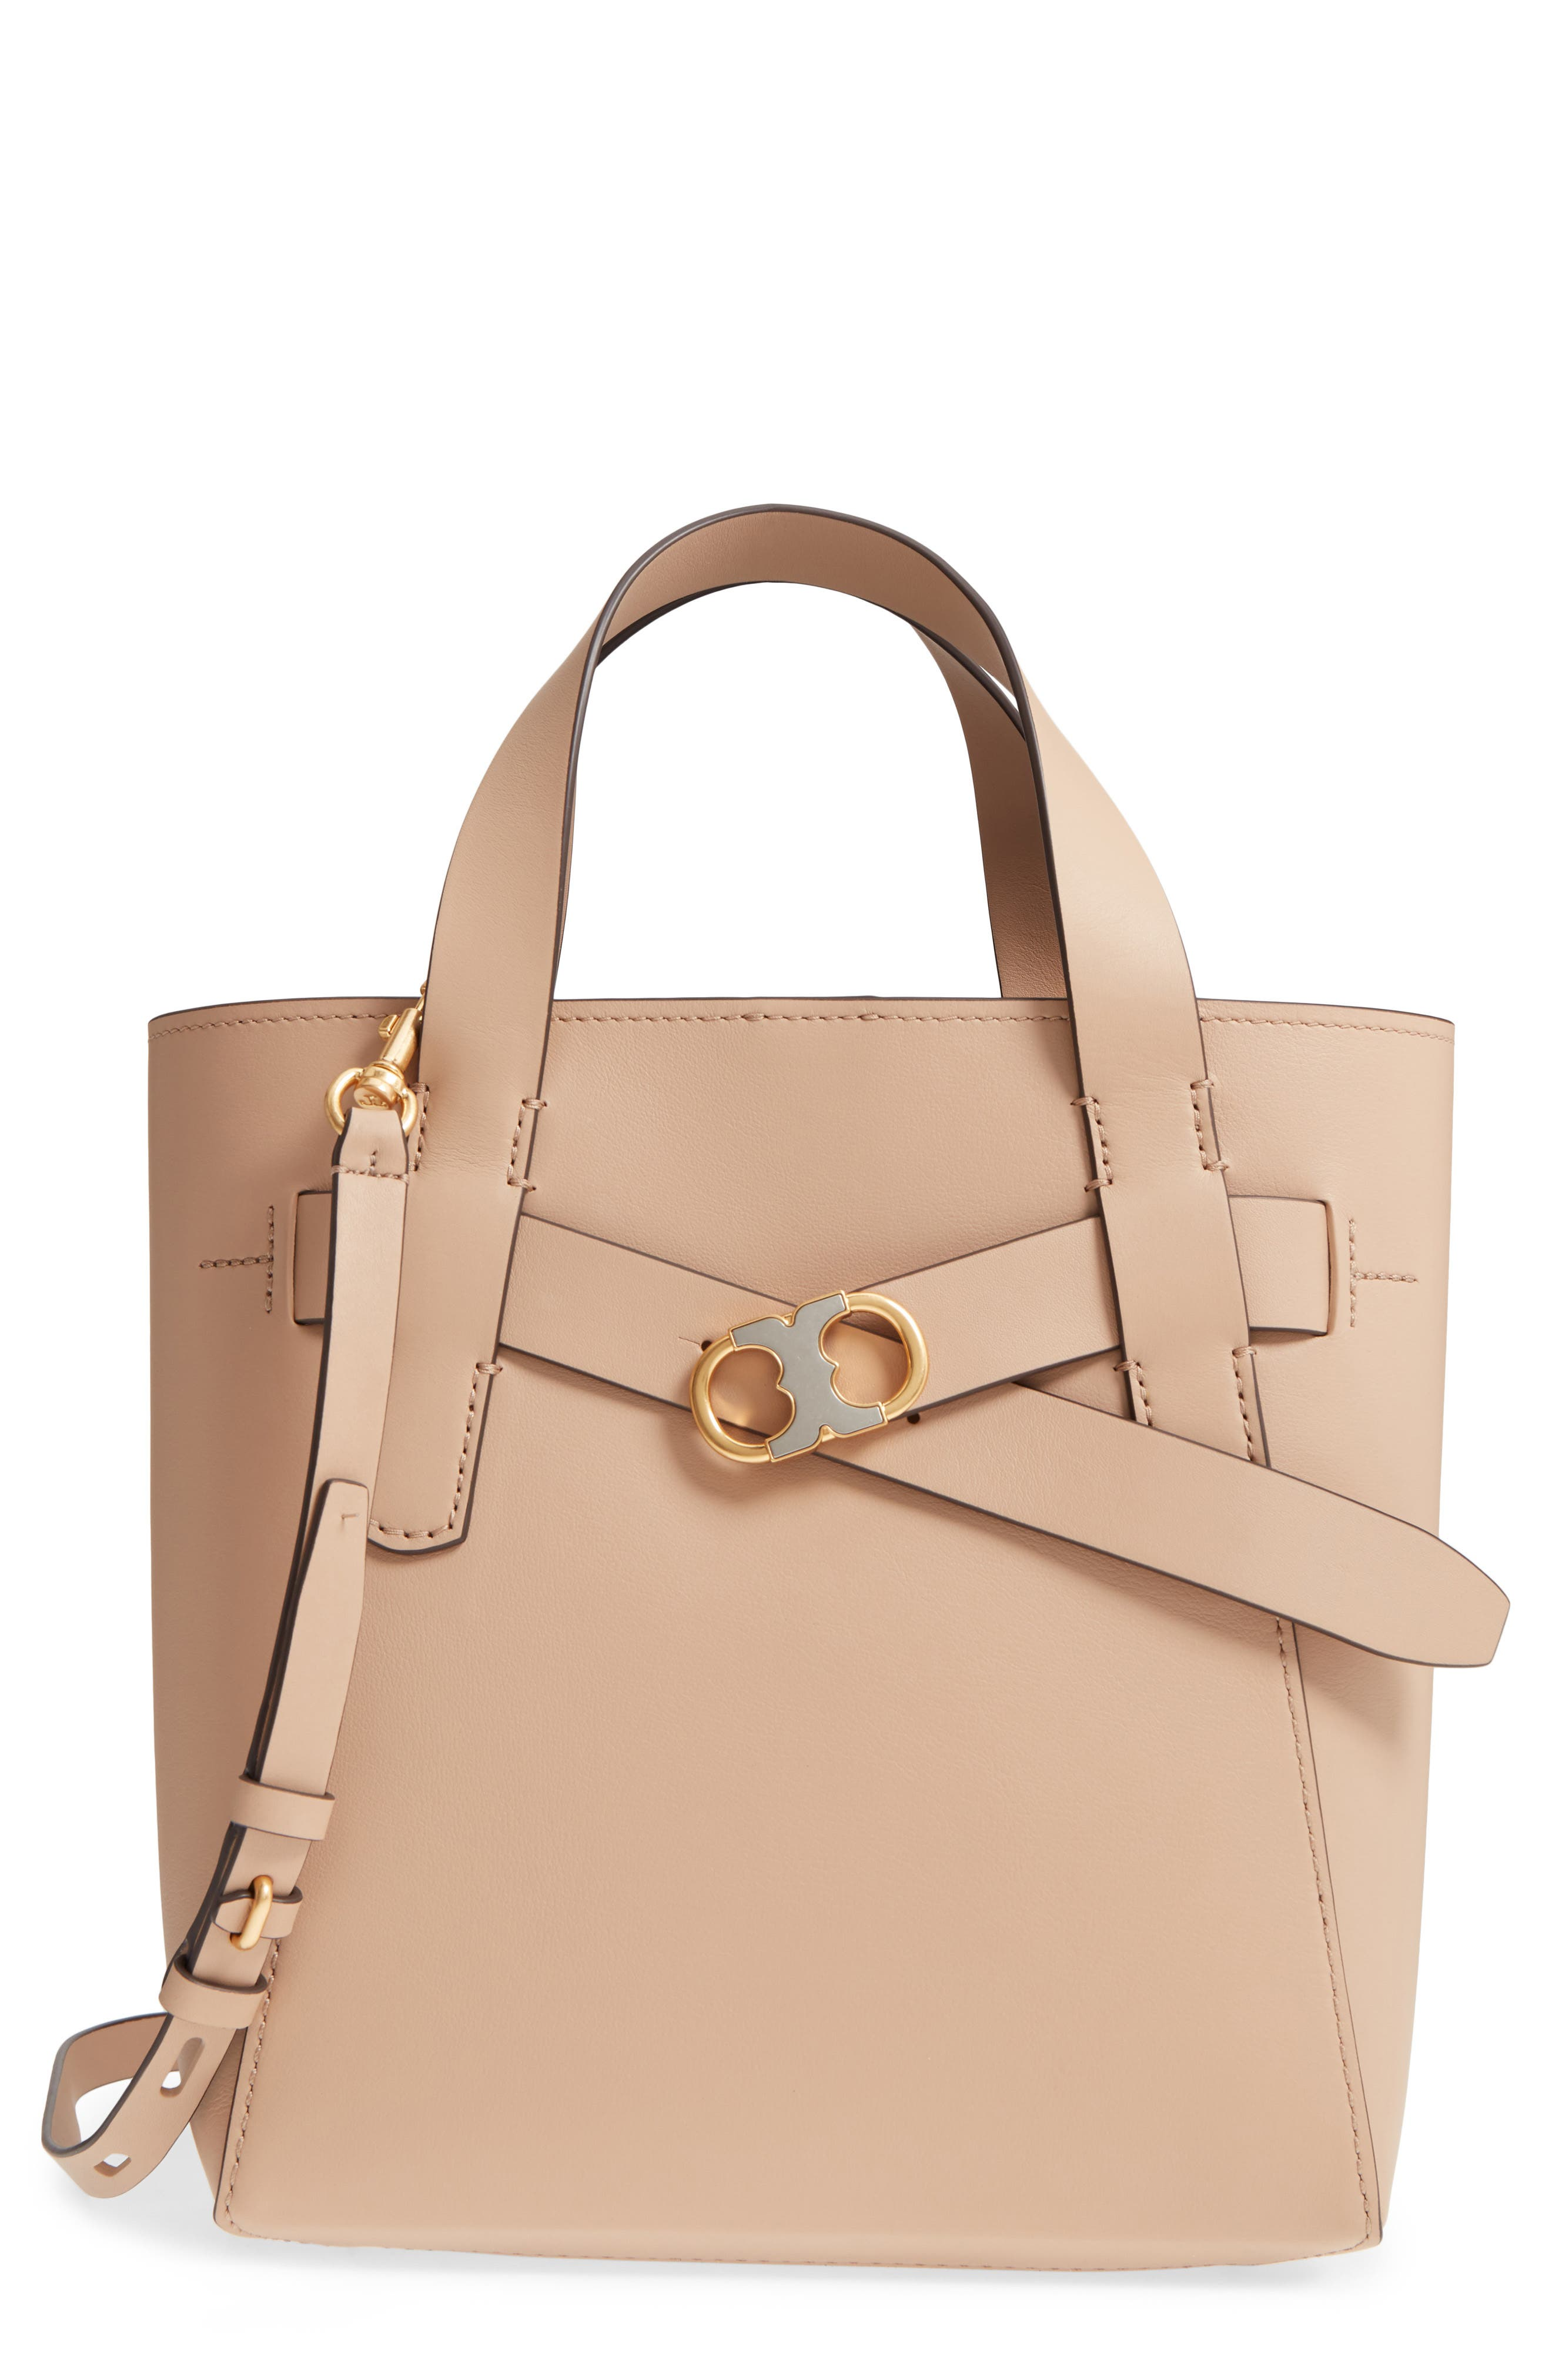 Small Gemini Link Leather Tote,                             Main thumbnail 1, color,                             262